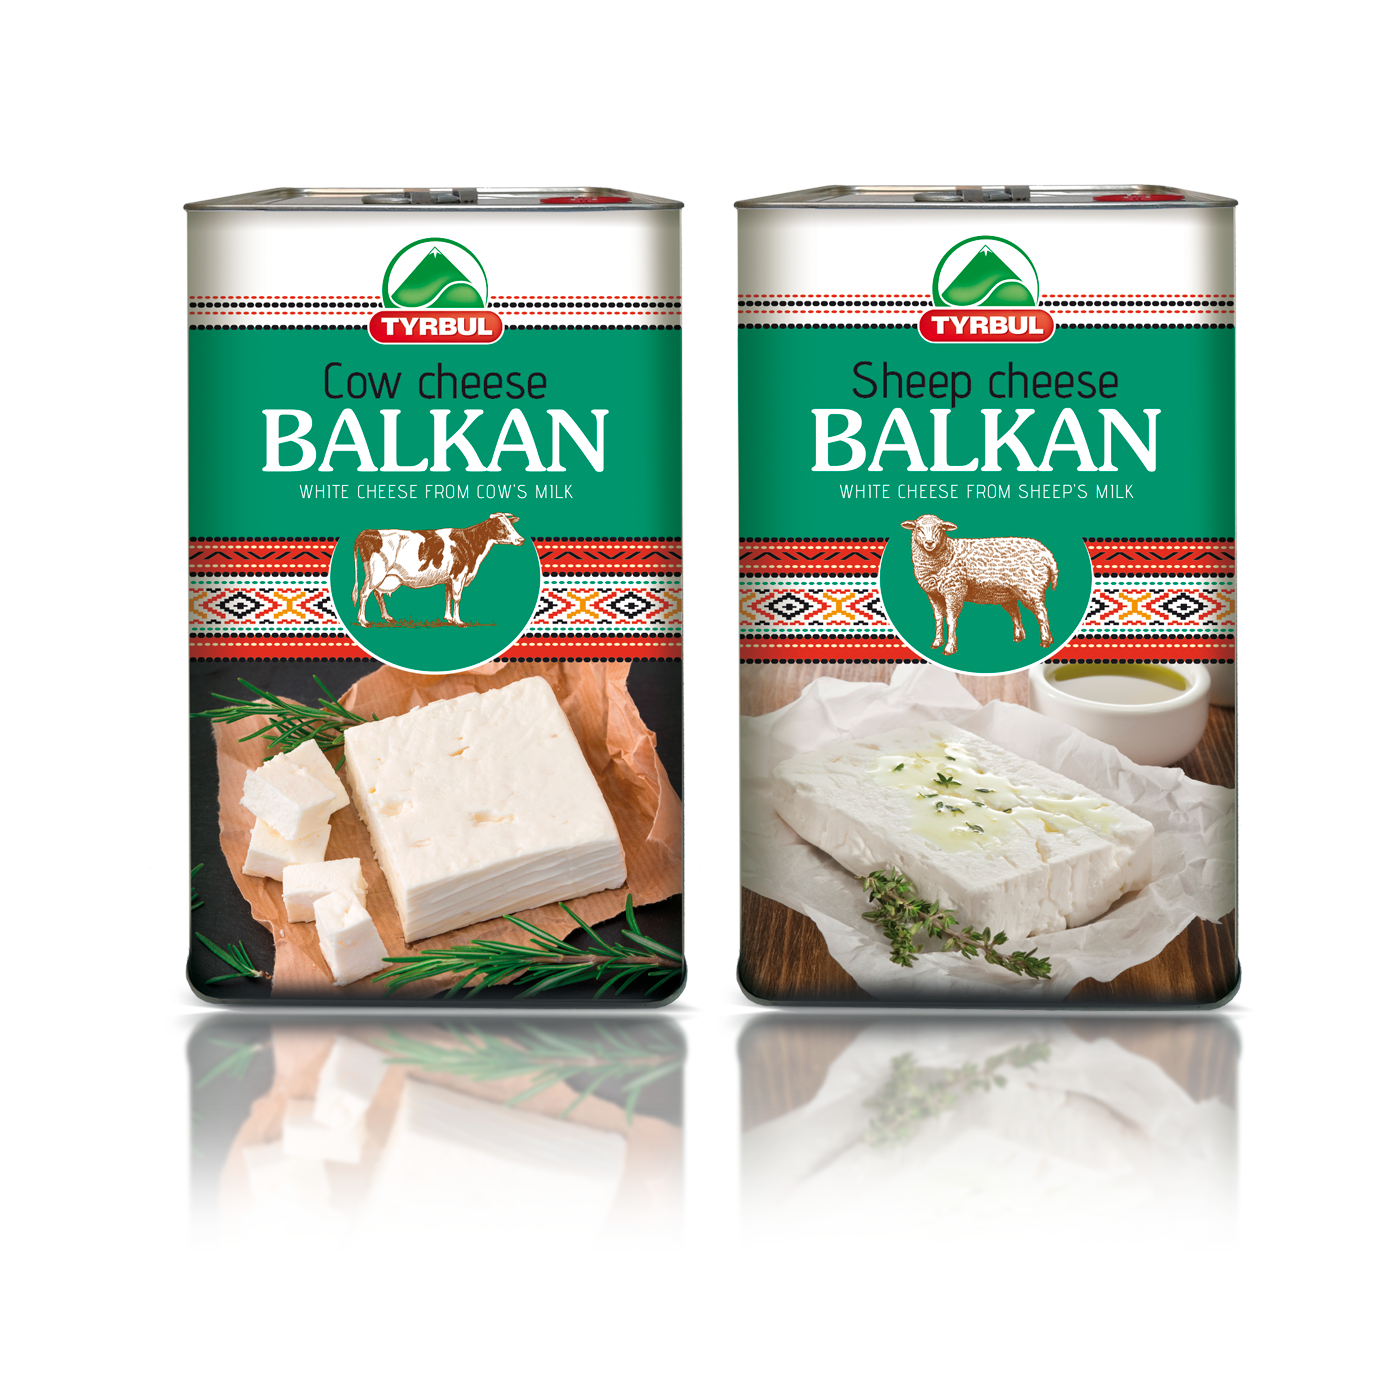 Balkan Cow Cheese